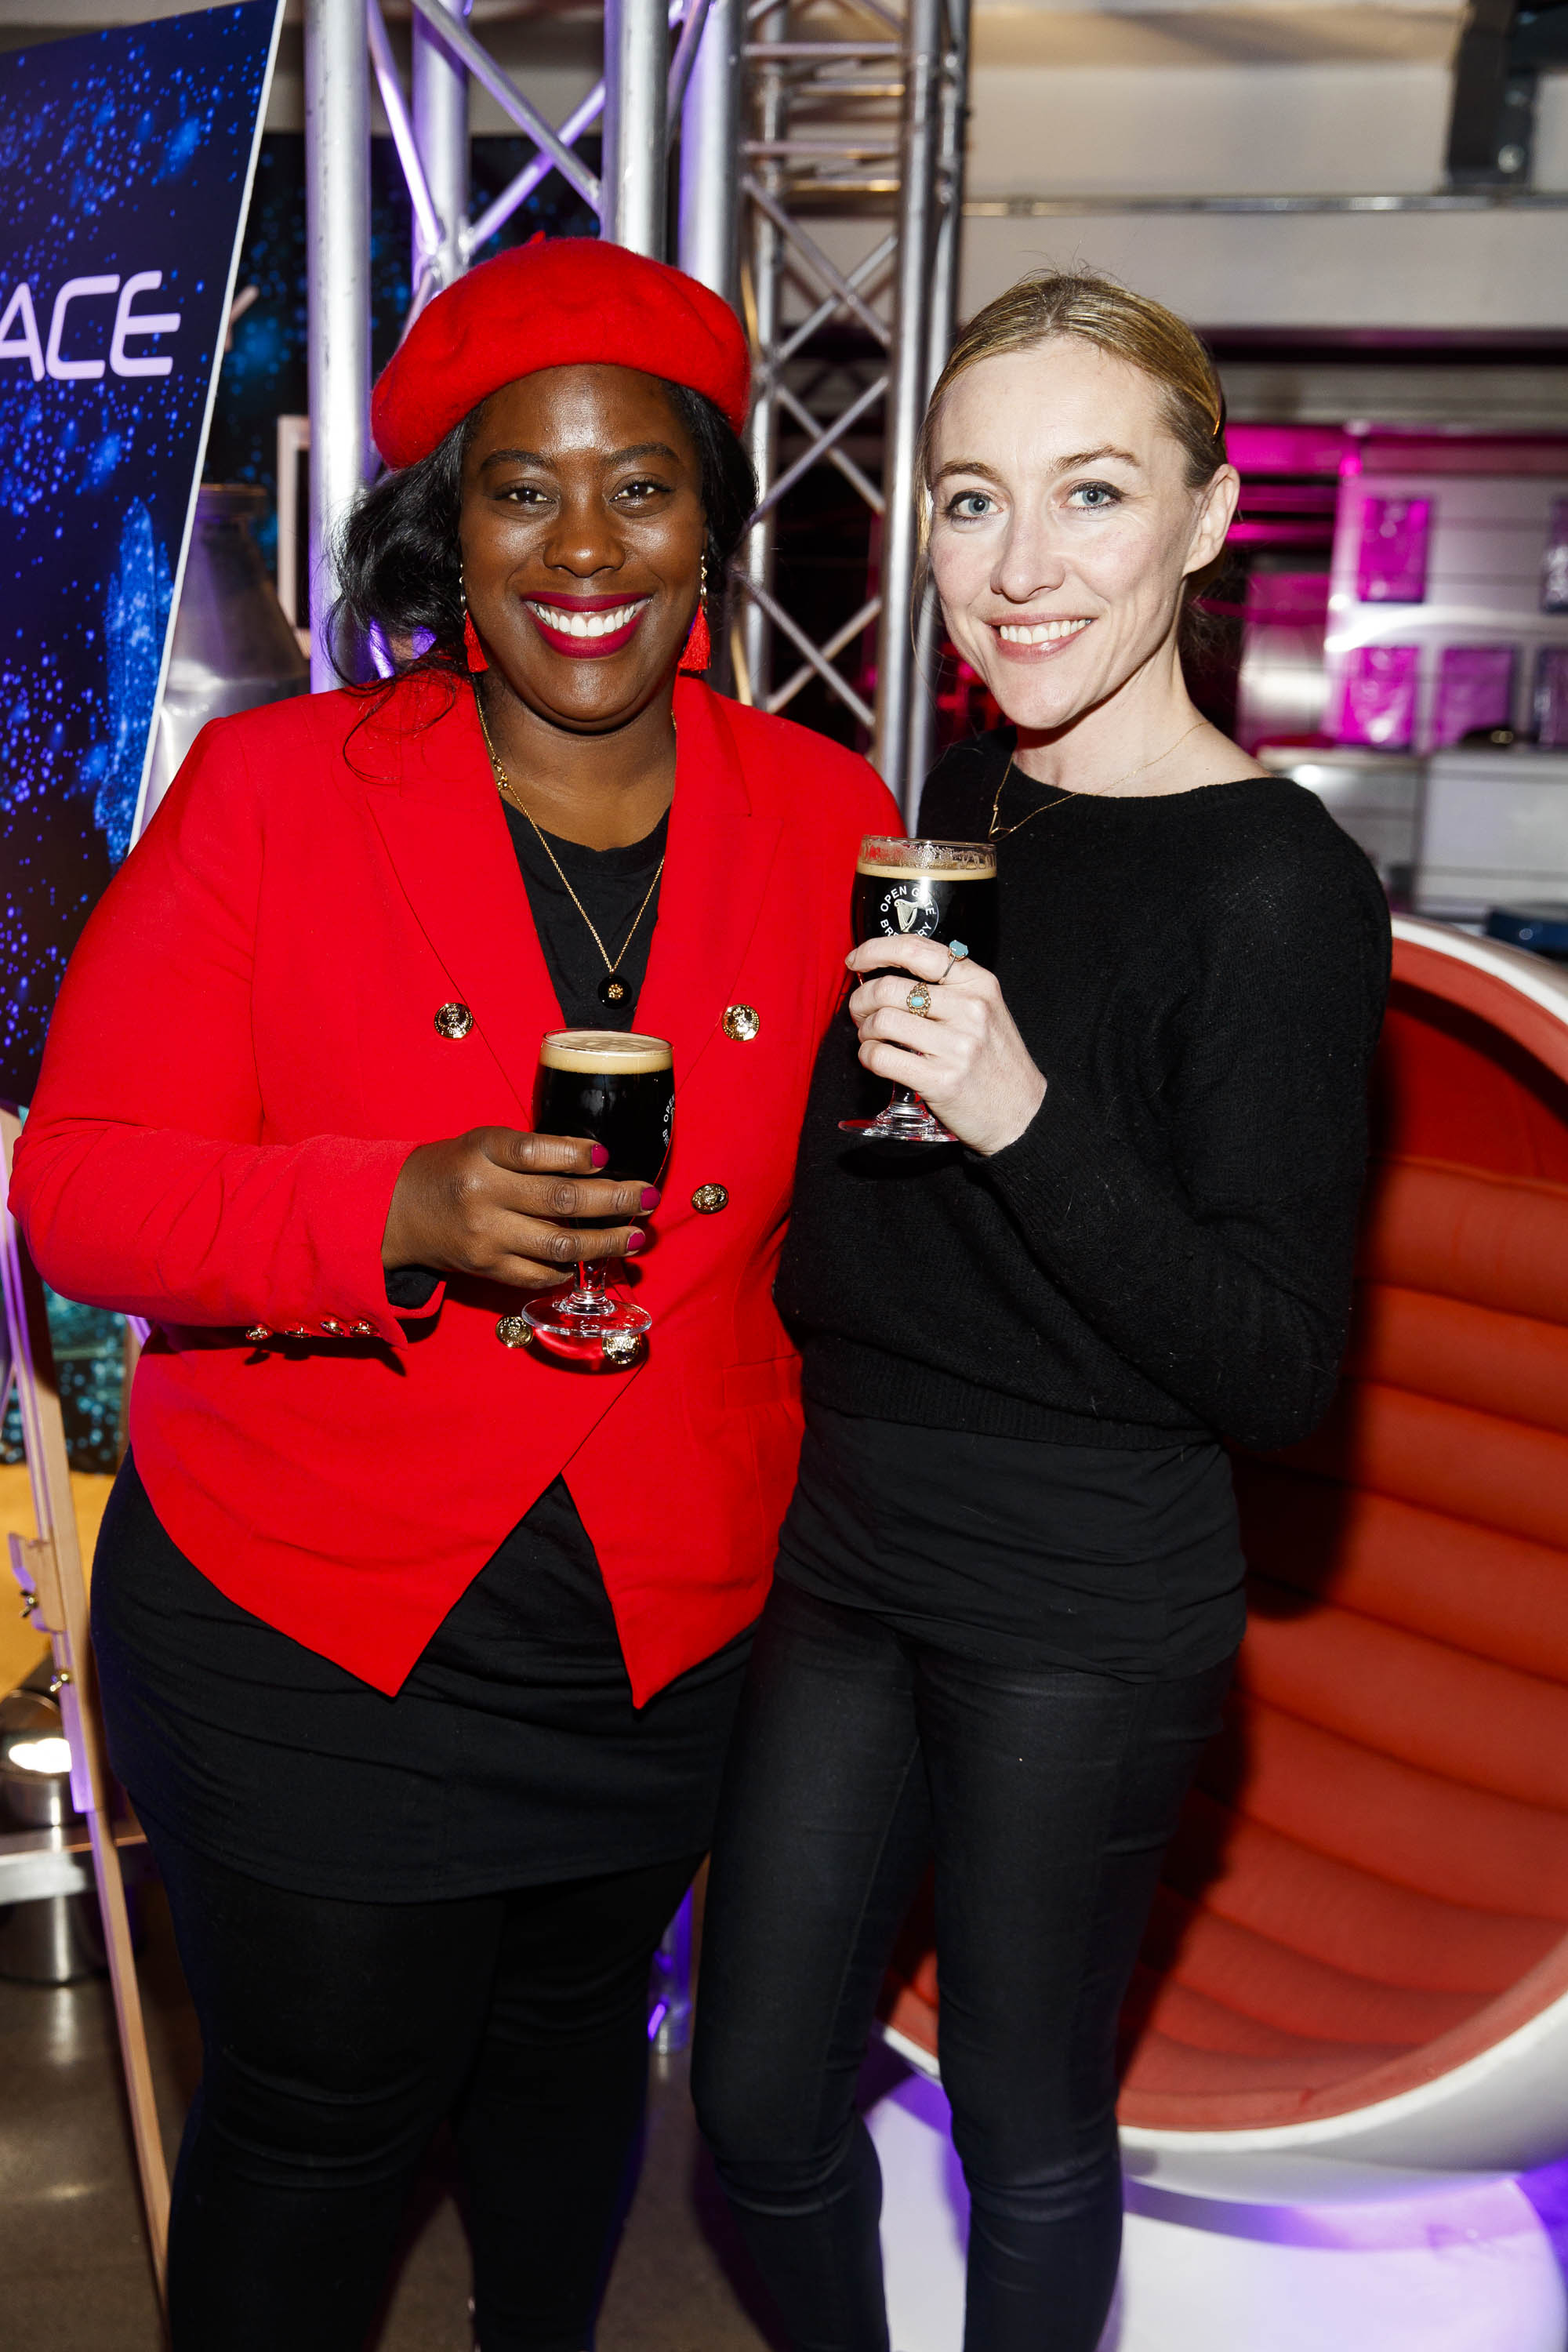 STOUT OF THIS WORLD Nadine Reid and Trudy Hayes pictured on International Stout Day as Guinness celebrated innovation in brewing with a future of stout summit.    Guinness together with guest brewers and a host of experts from around the world, celebrated bravery in brewing by hosting a Future of Stout Summit, focused on stout innovation and the opportunities in brewing this unique style of beer.   At the summit, Guinness announced that its brewers are set to work on a feasibility study, which will investigate the viability of brewing a Guinness fit to be enjoyed in space. Through further research, innovation and experimentation, Guinness will draw on over 259 years of experience in the hope of making a breakthrough.     Hosted in the Open Gate Brewery, the home of beer innovation and experimentation at Guinness, the stout summit was attended by a team of brewers from the St. James's Gate Brewery in Dublin and other brewers from around the world including the UK, the Netherlands, Korea as well as brewers from all over Ireland. Inspiration at the summit was also delivered by Dr. Norah Patten, who is set to be the first Irish person to travel into space, Kitchen's Theory's Chef, Jozef Youssef and Oxford University Gastrophysics Professor, Charles Spence, who together are on a continuous odyssey to research and demystify the field of gastronomy, and Erin Peters, the beer writer behind International Stout Day. Picture Andres Poveda More information can be found at www.guinness.com   Enjoy Guinness Sensibly. Visit www.drinkaware.ie.